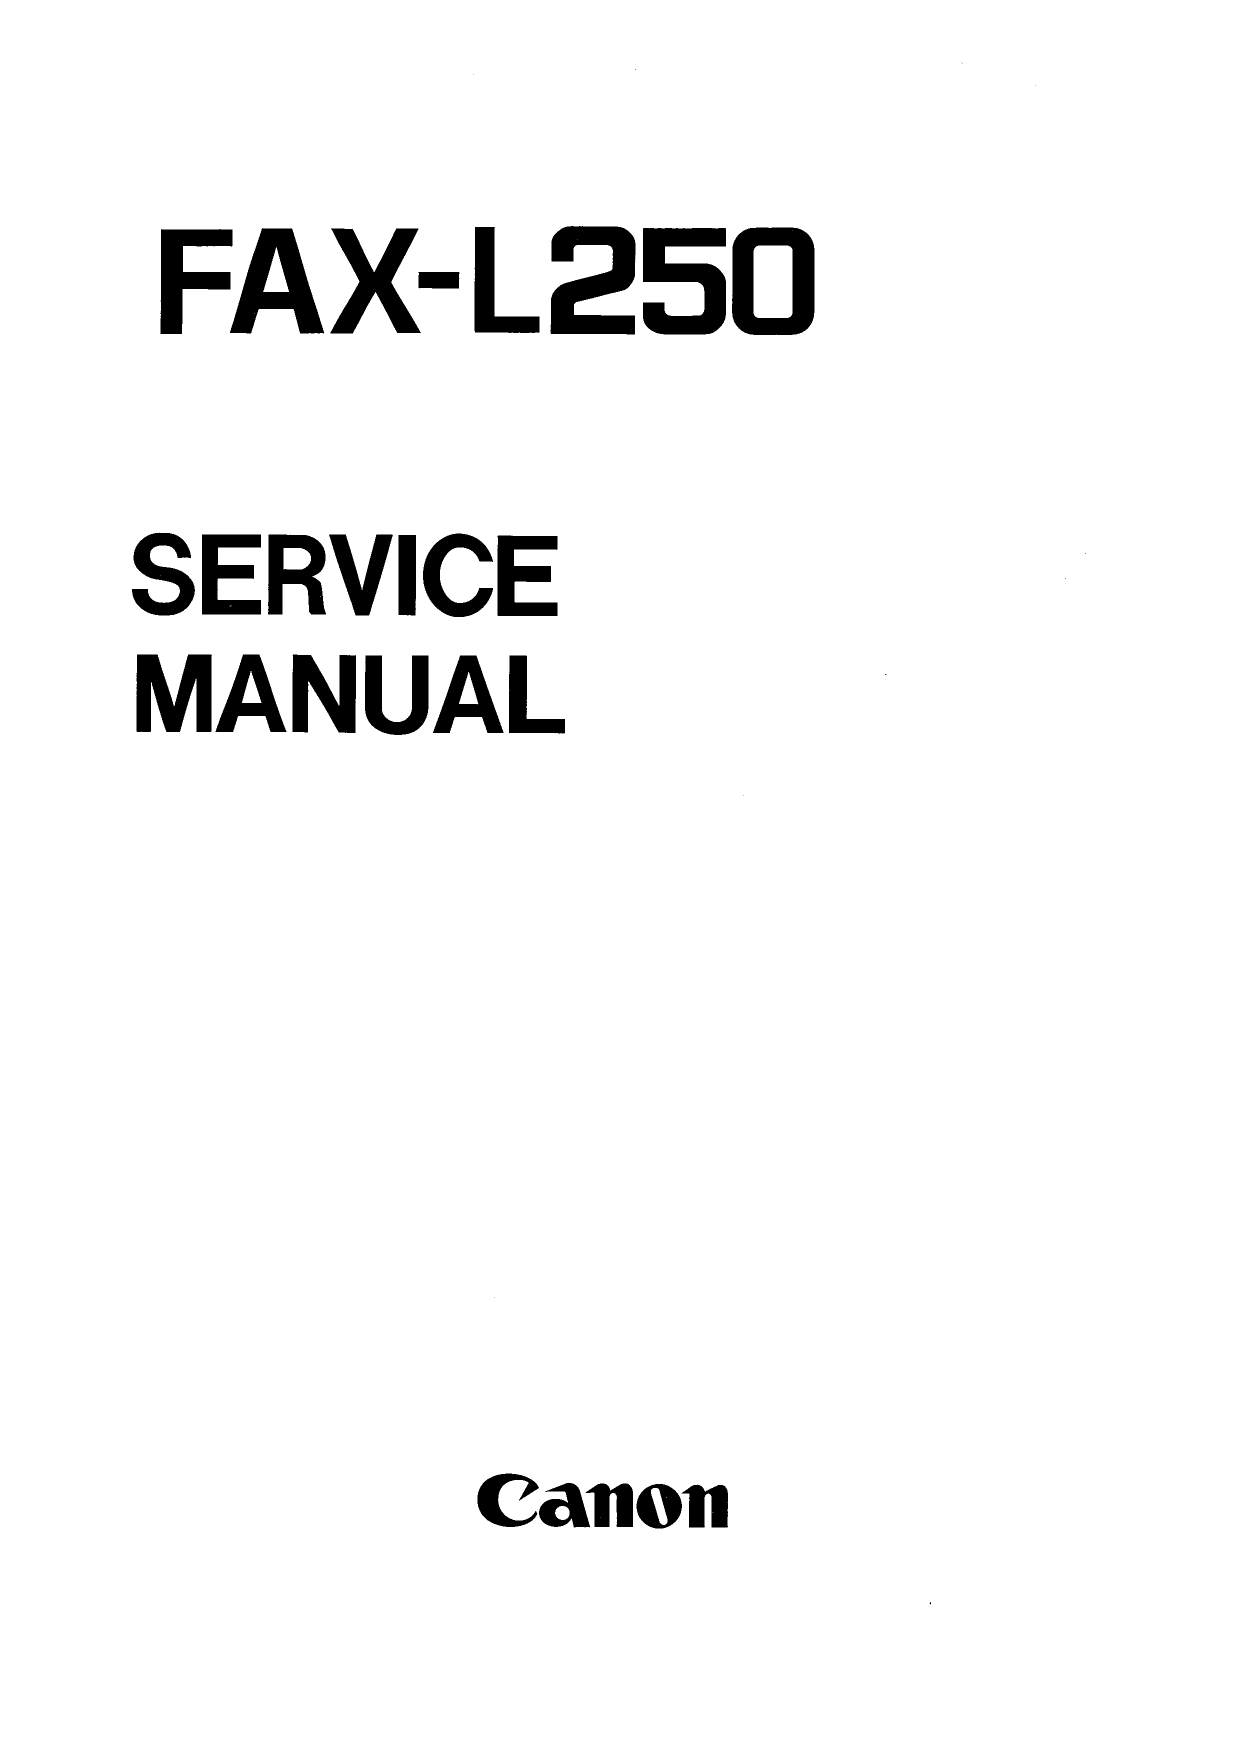 Canon FAX L250 Parts and Service Manual-1